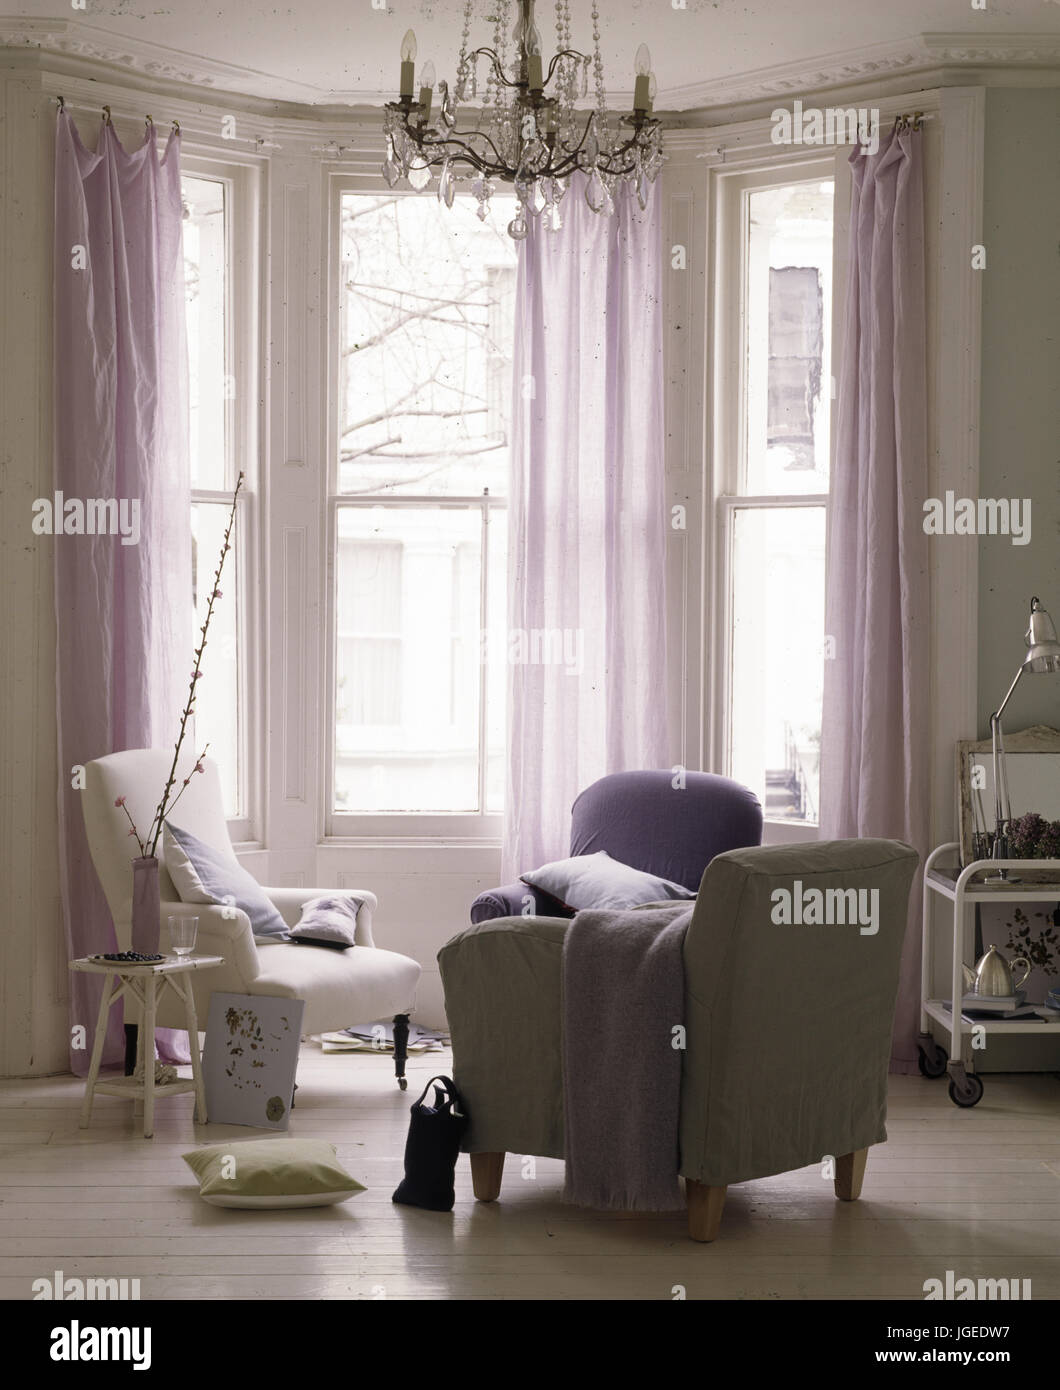 Bay Window With Sheer Mauve Curtains In Contemporary Decorated Stock Photo Alamy